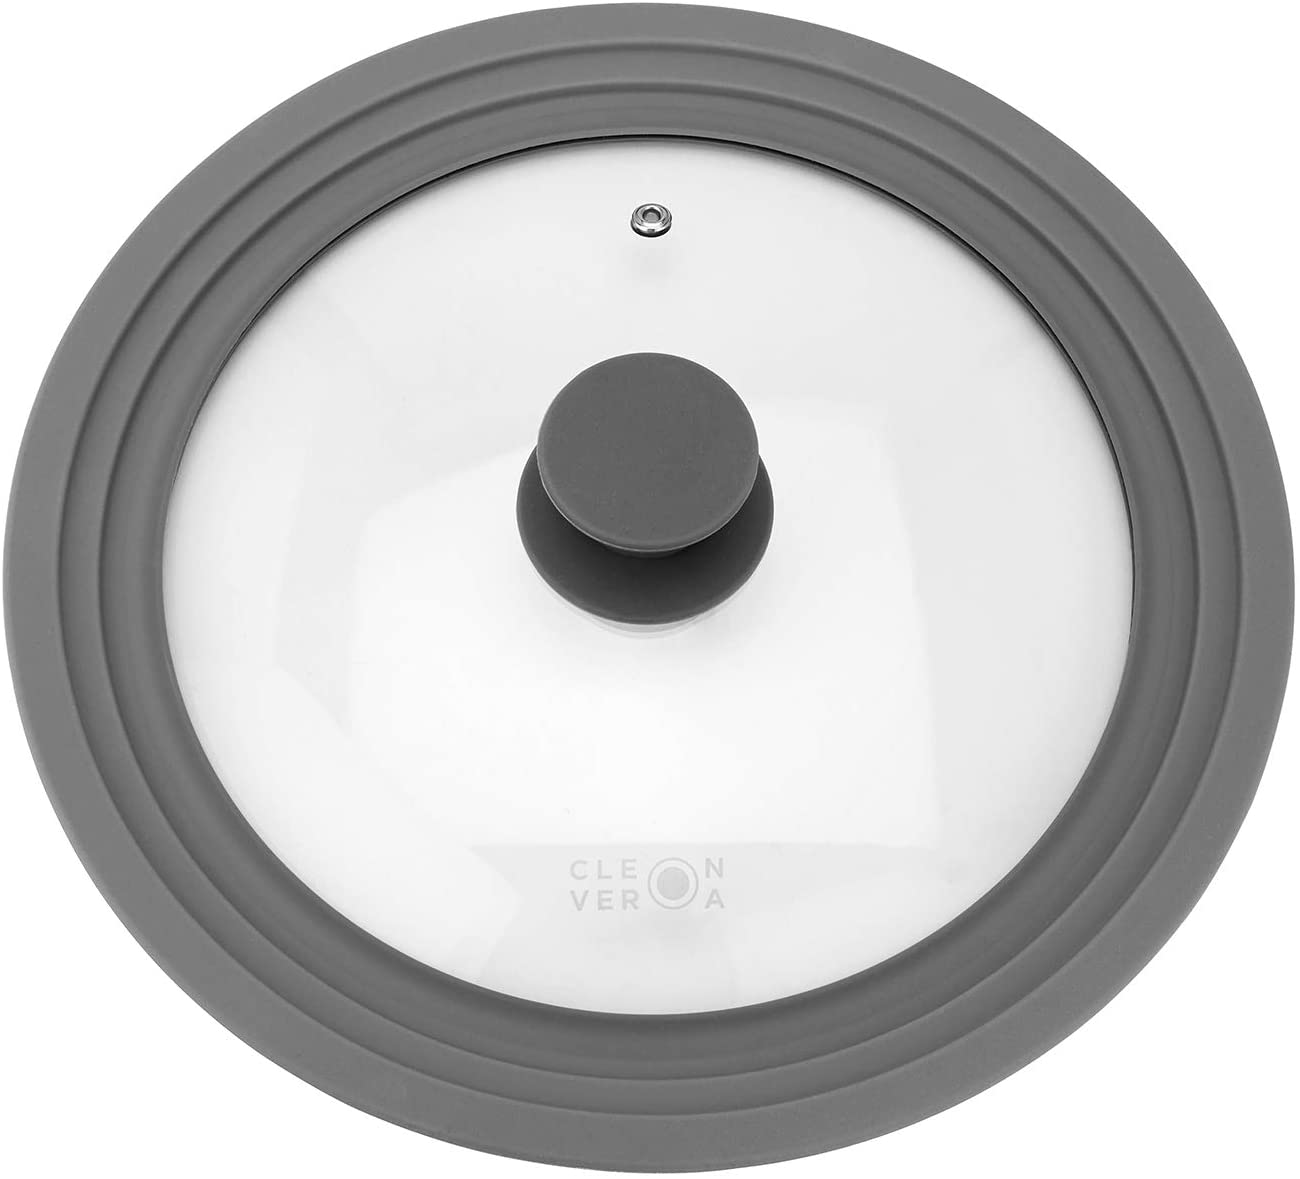 Cleverona Clever Lid, Universal Pot and Pan Lid, Extra Large fits 11, 12 and 12.5 inch Pans, Dark Grey: Home & Kitchen